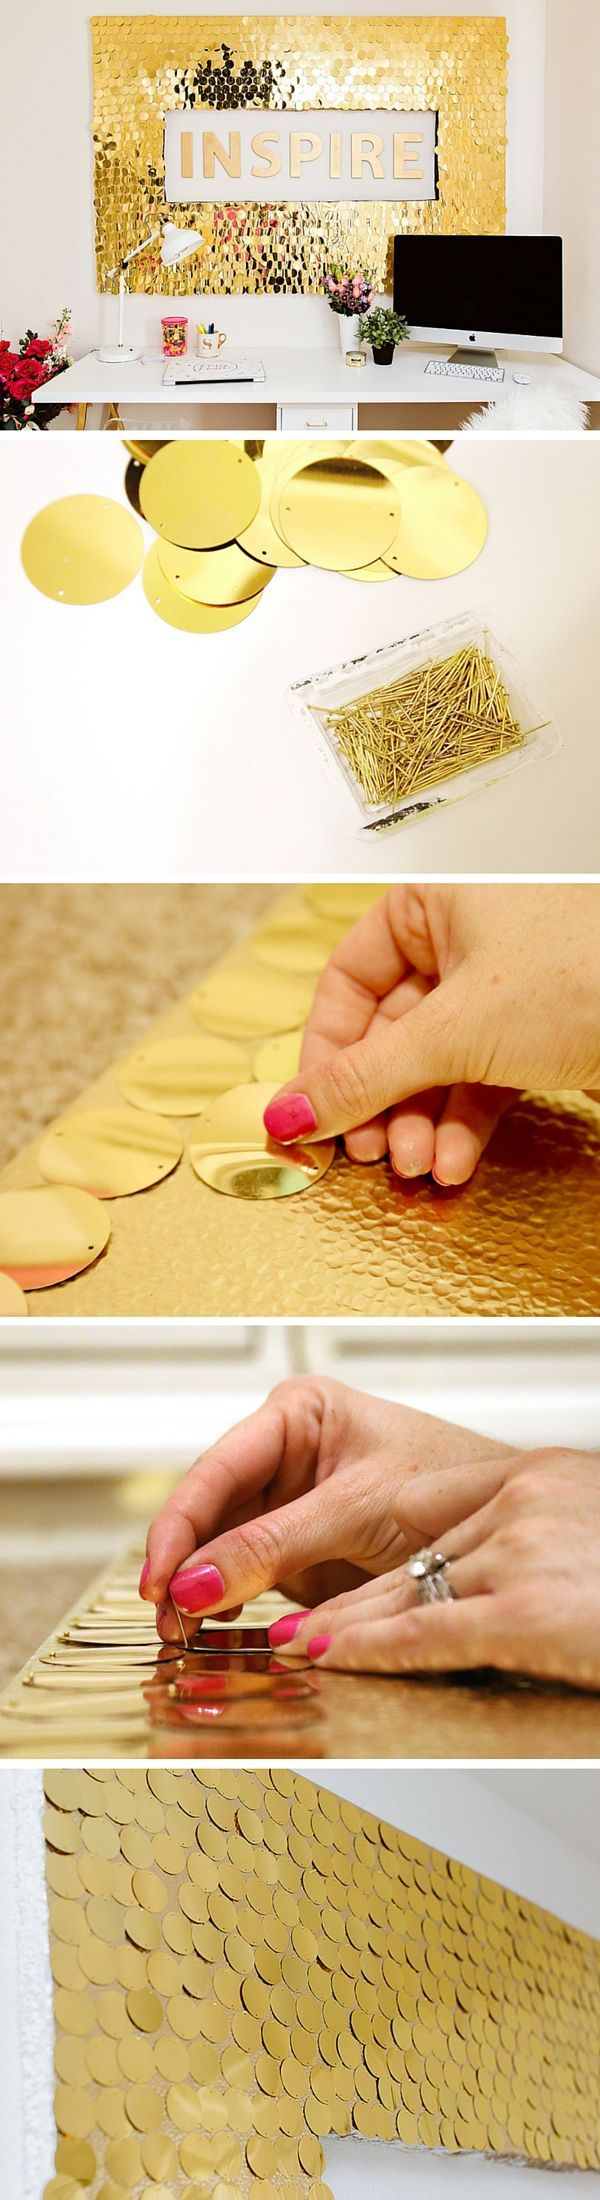 40+ DIY Projects to Make Your Home Look Classy | Wall art crafts ...